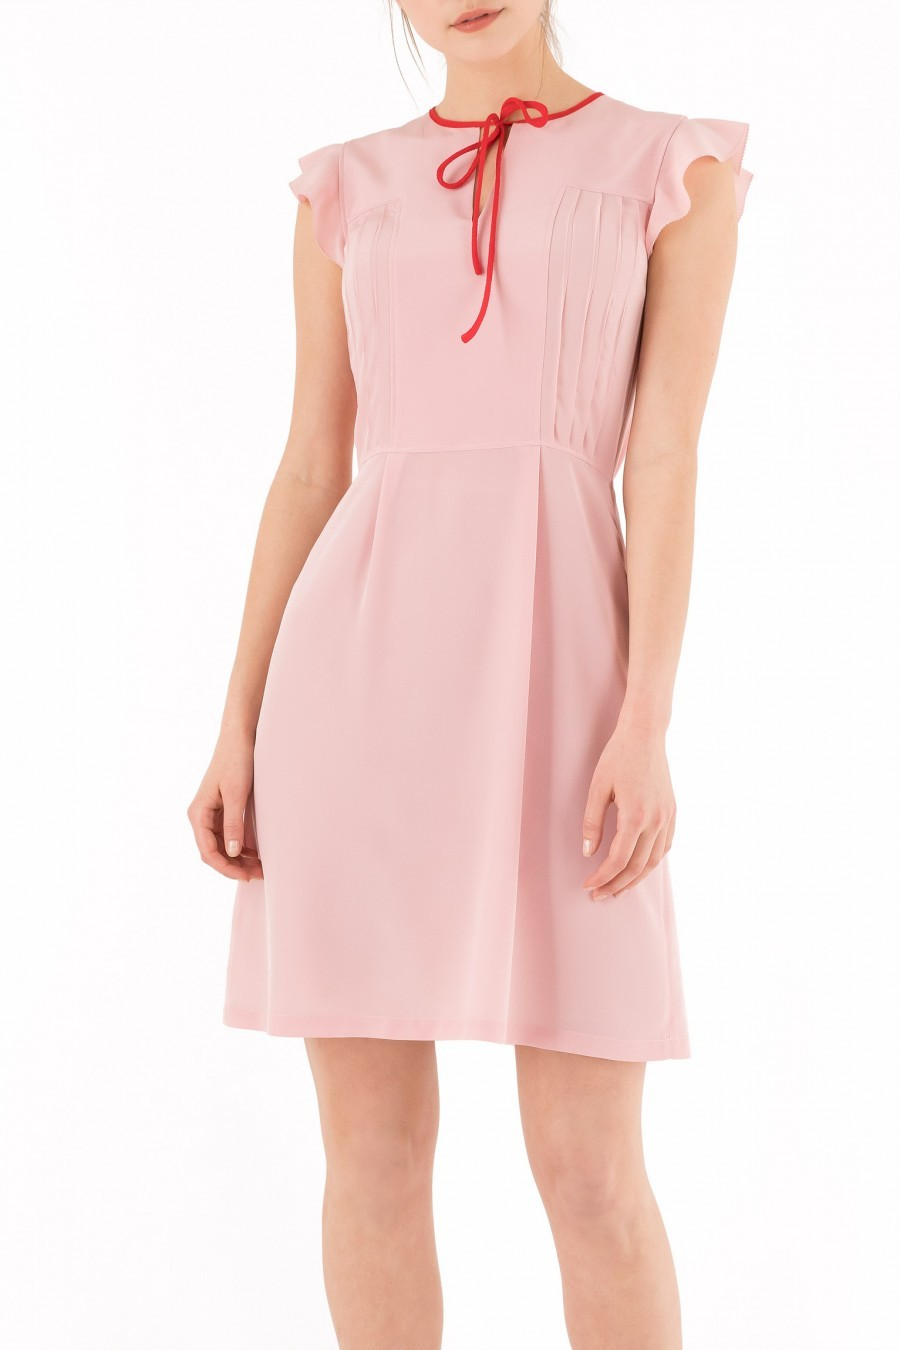 pink silk dress cap sleeve bow